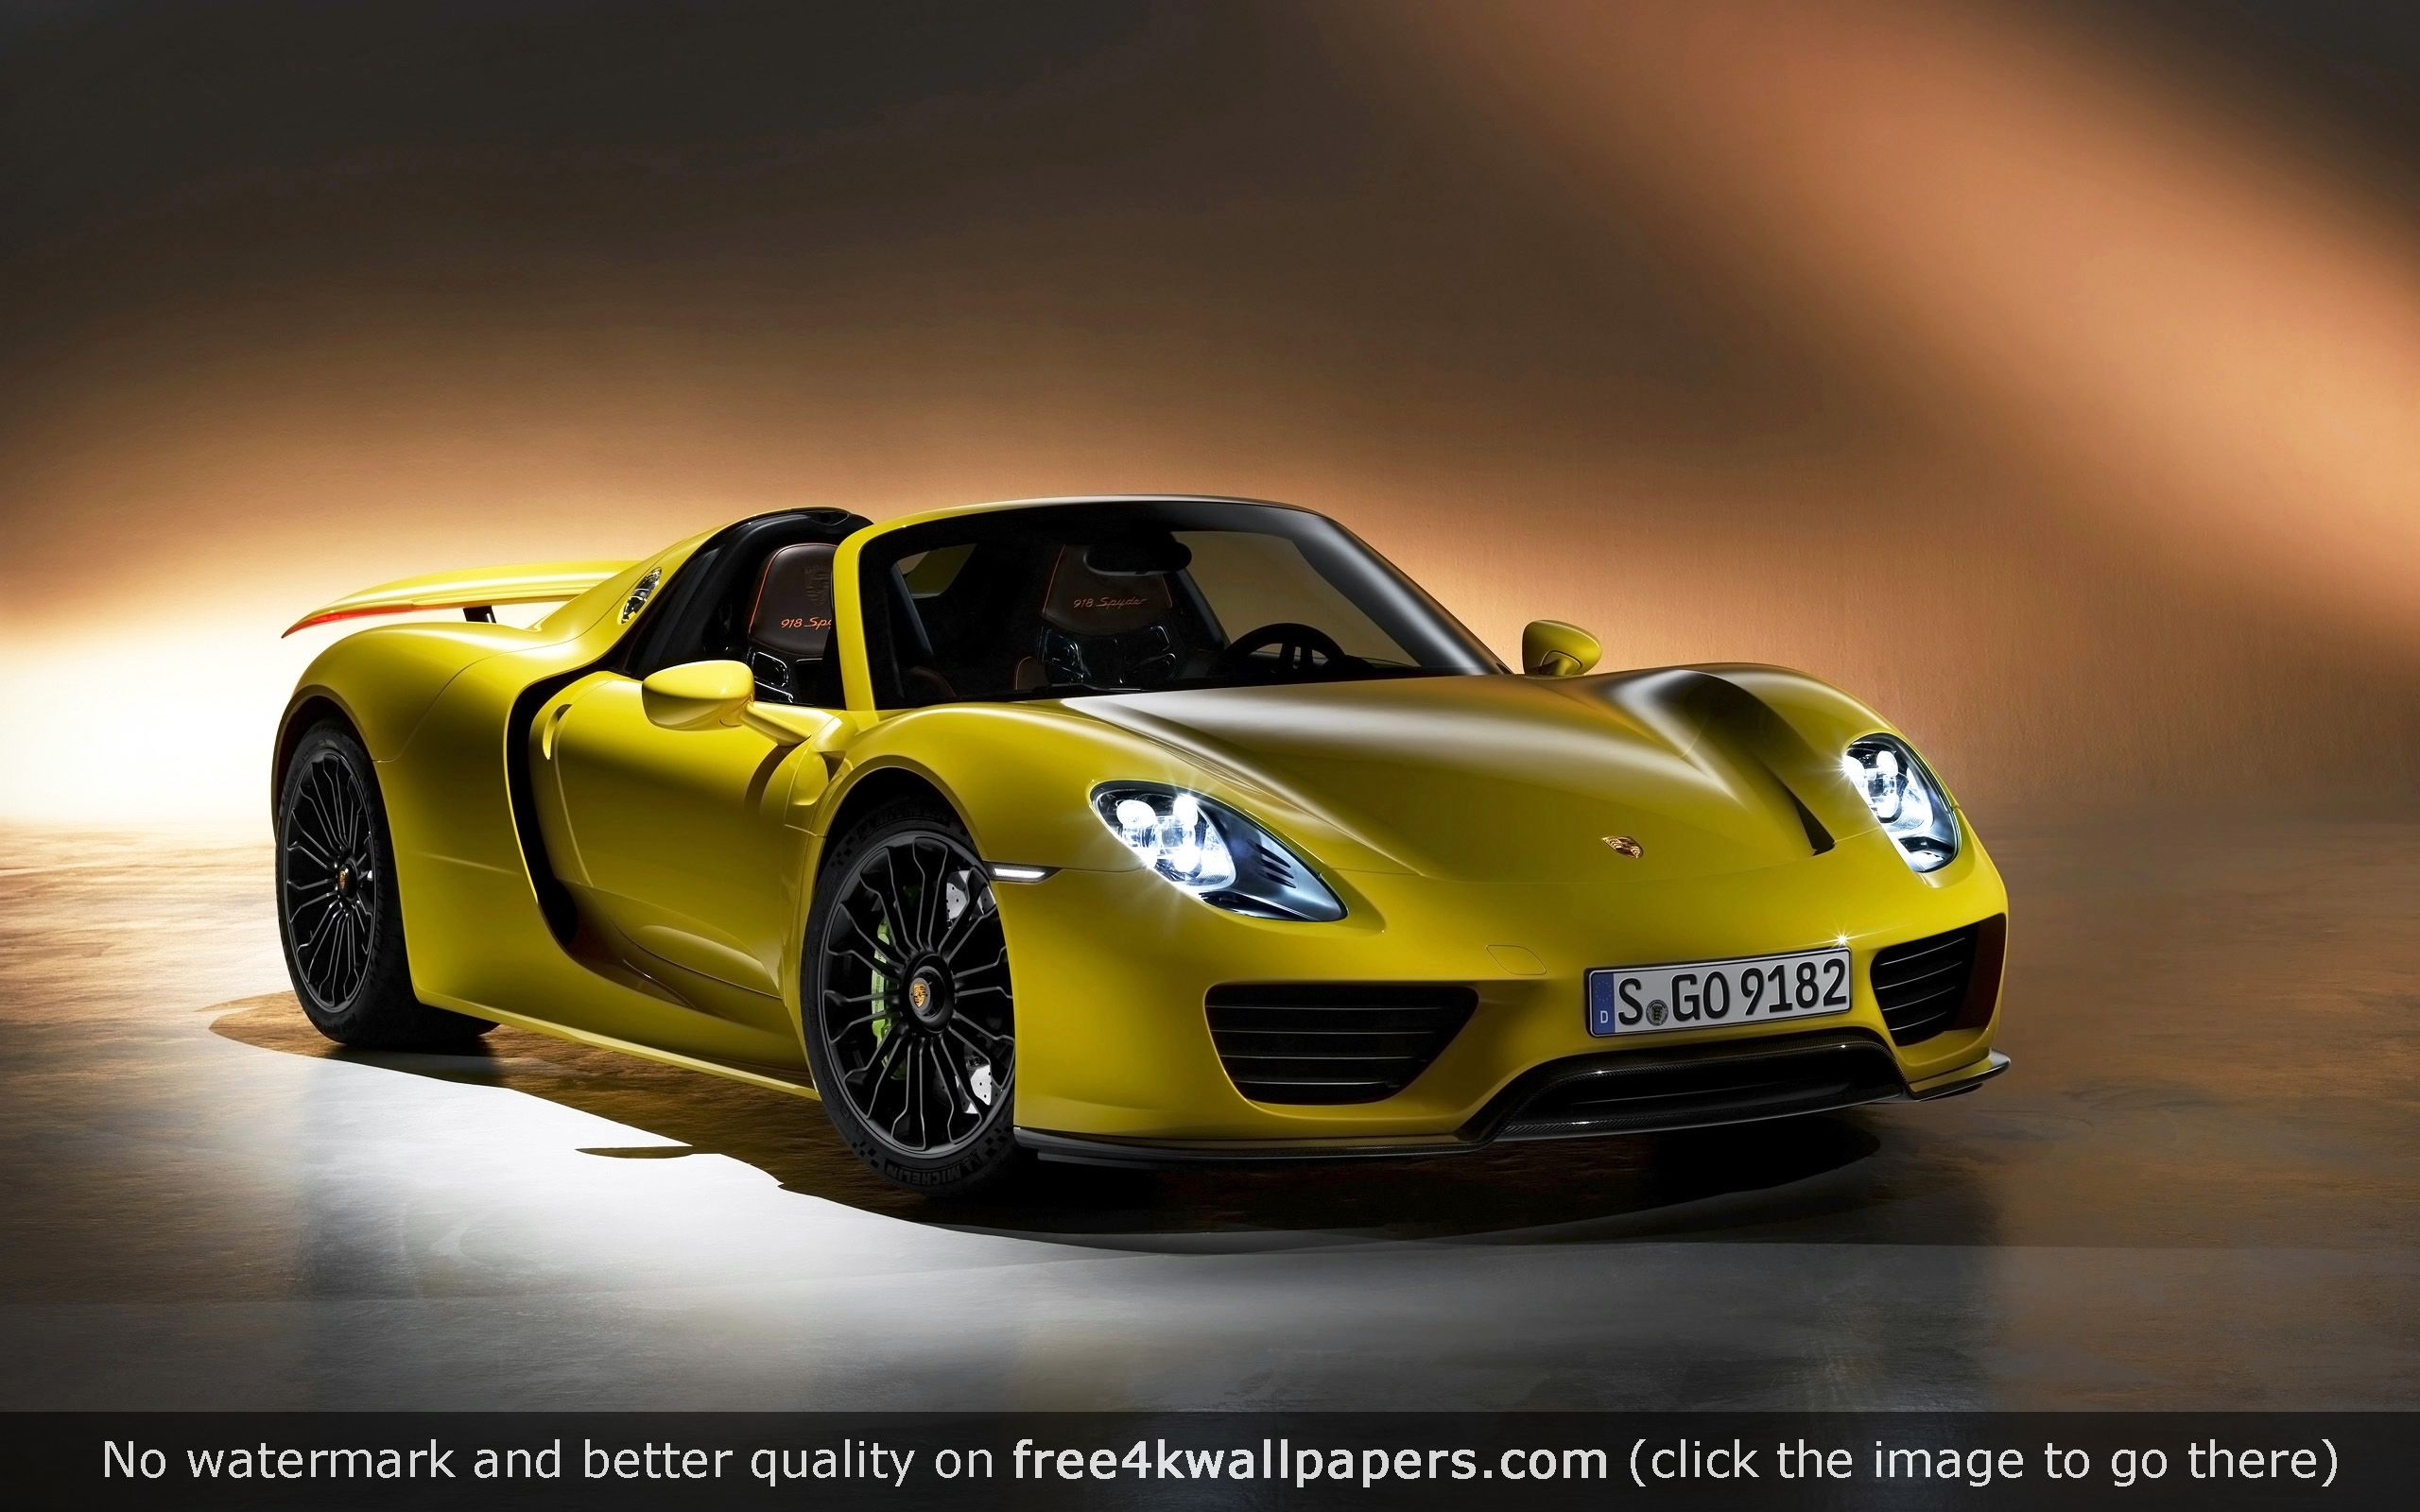 d37dabc5fbaff94e8ef27482e7b52cdf Fabulous How Much Does the Porsche 918 Spyder Concept Cost In Real Racing 3 Cars Trend